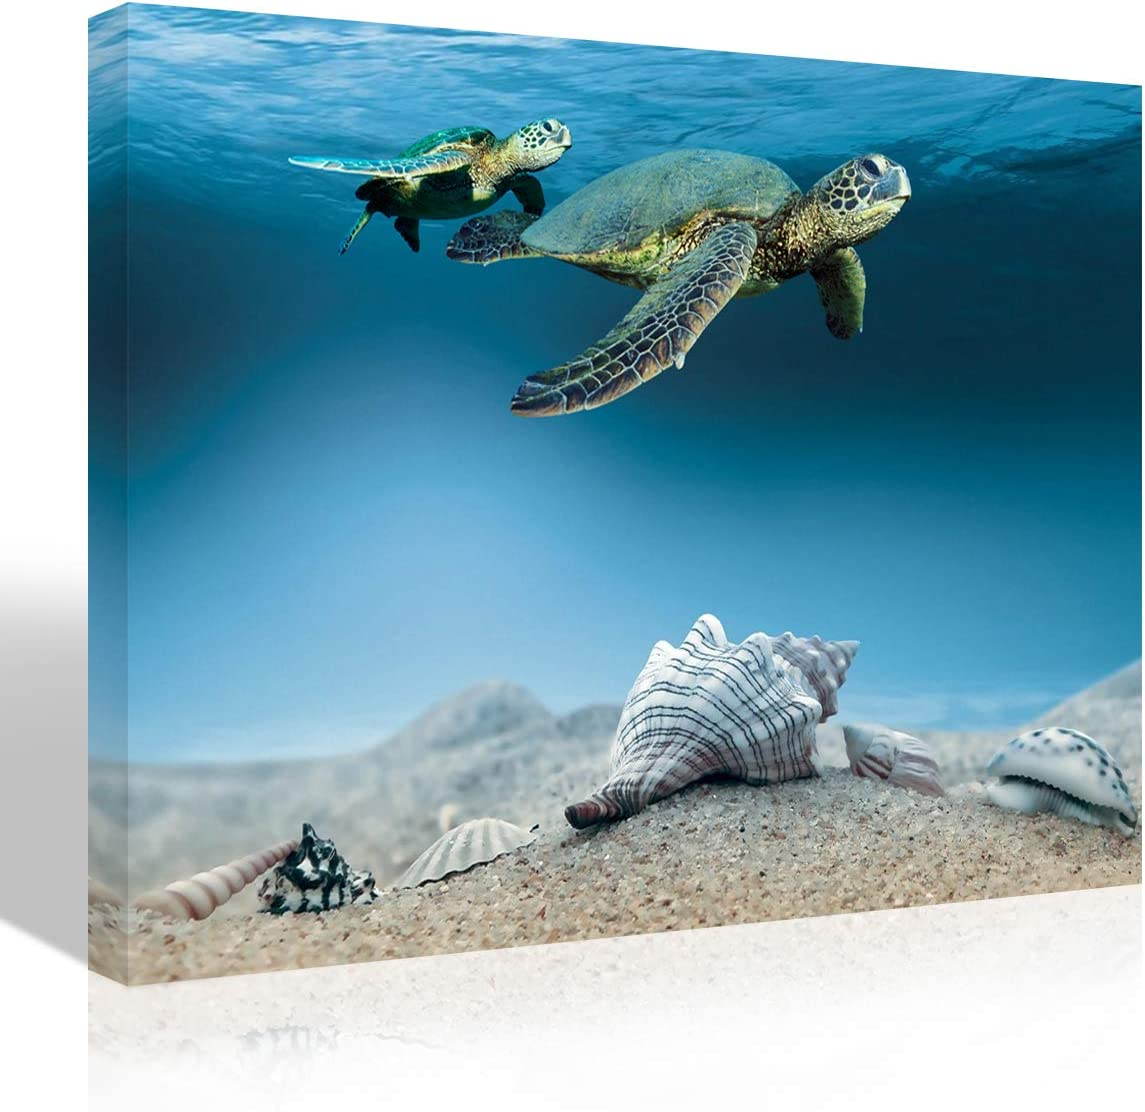 Purple Verbena Art Sea Conch Shell Starfish Turtle Canvas Print Art Picture Painting Blue Ocean Nature Seascape Photo Wall Art Home Decoration for Living Room Bedroom Wall Décor,Framed 10x14 Inches